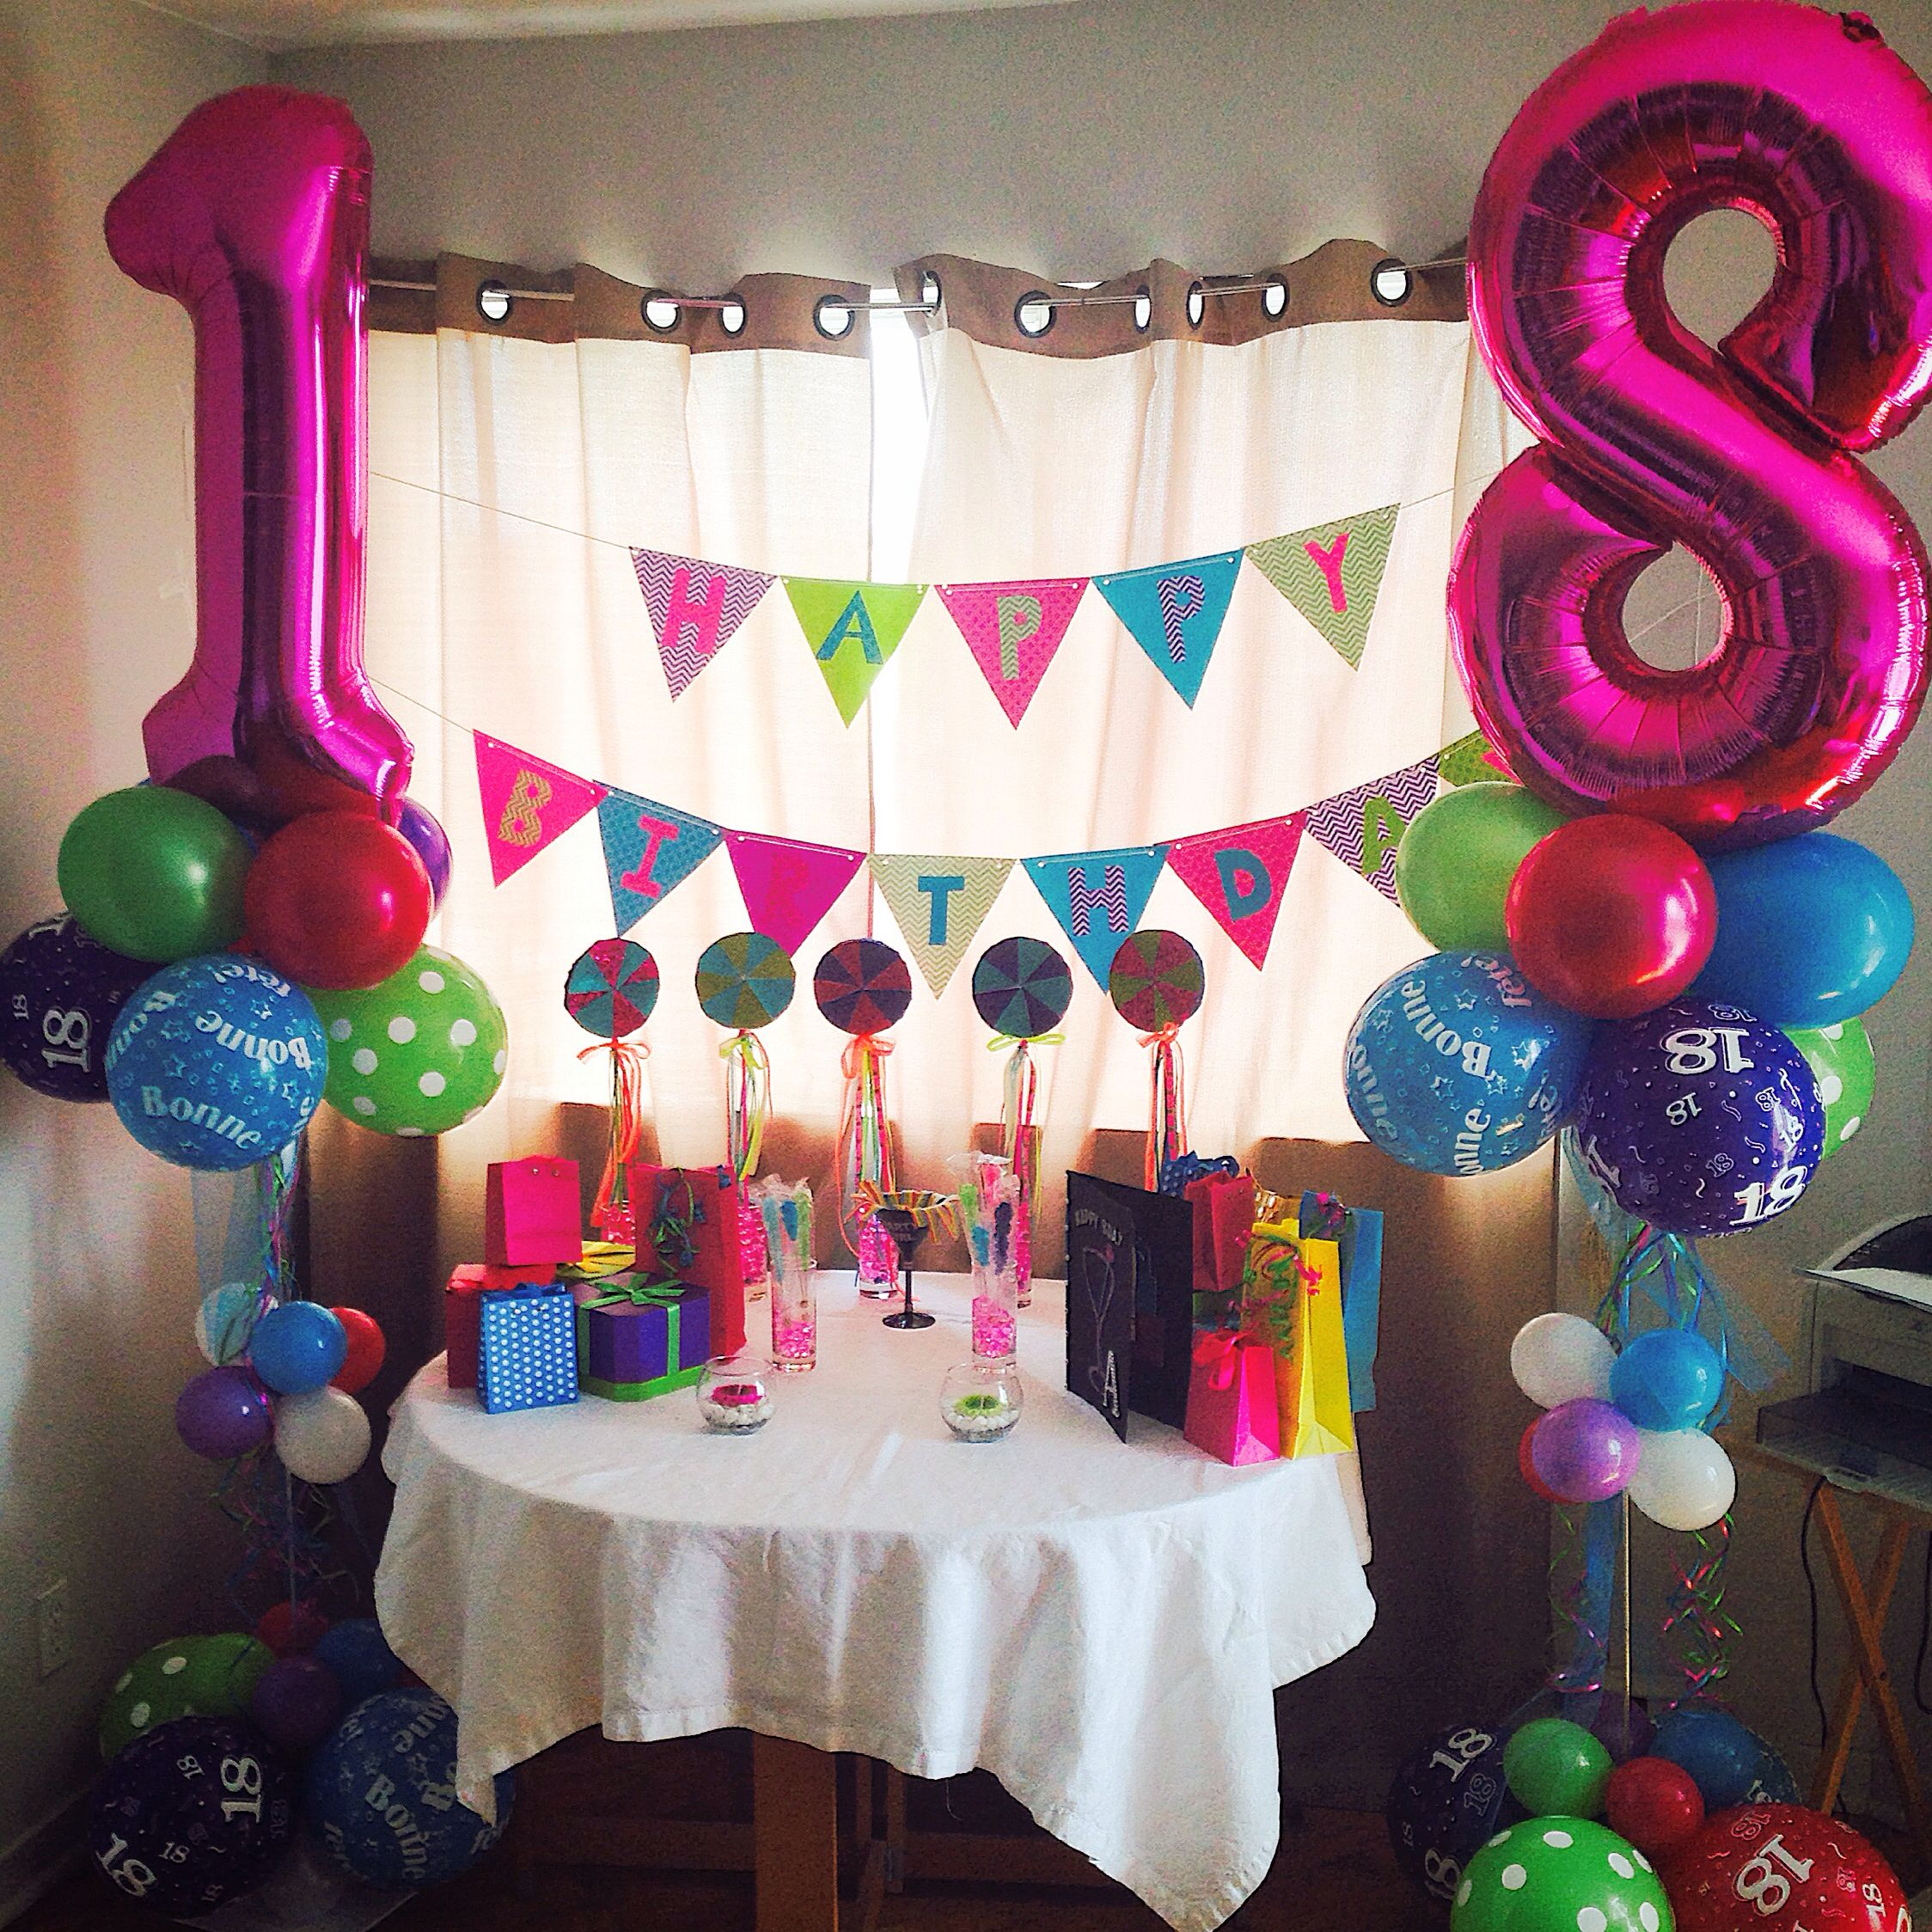 Decoration For My Sisters 18th Birthday I Did Everything On Own But Got All Ideas From Work At A Balloon Shop So It Was Super Easy